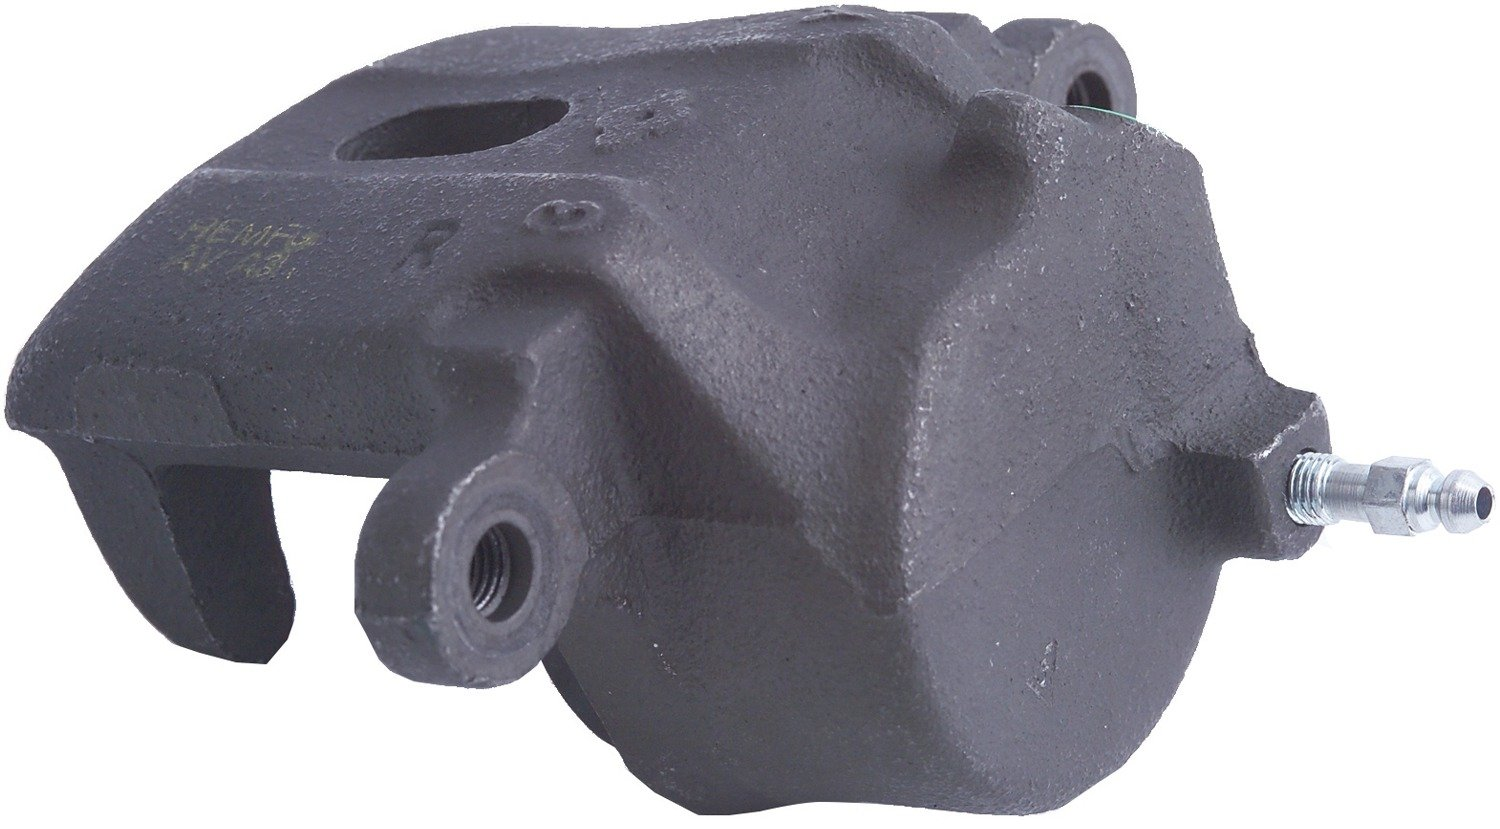 Cardone 19-572 Remanufactured Import Friction Ready Brake Caliper Unloaded